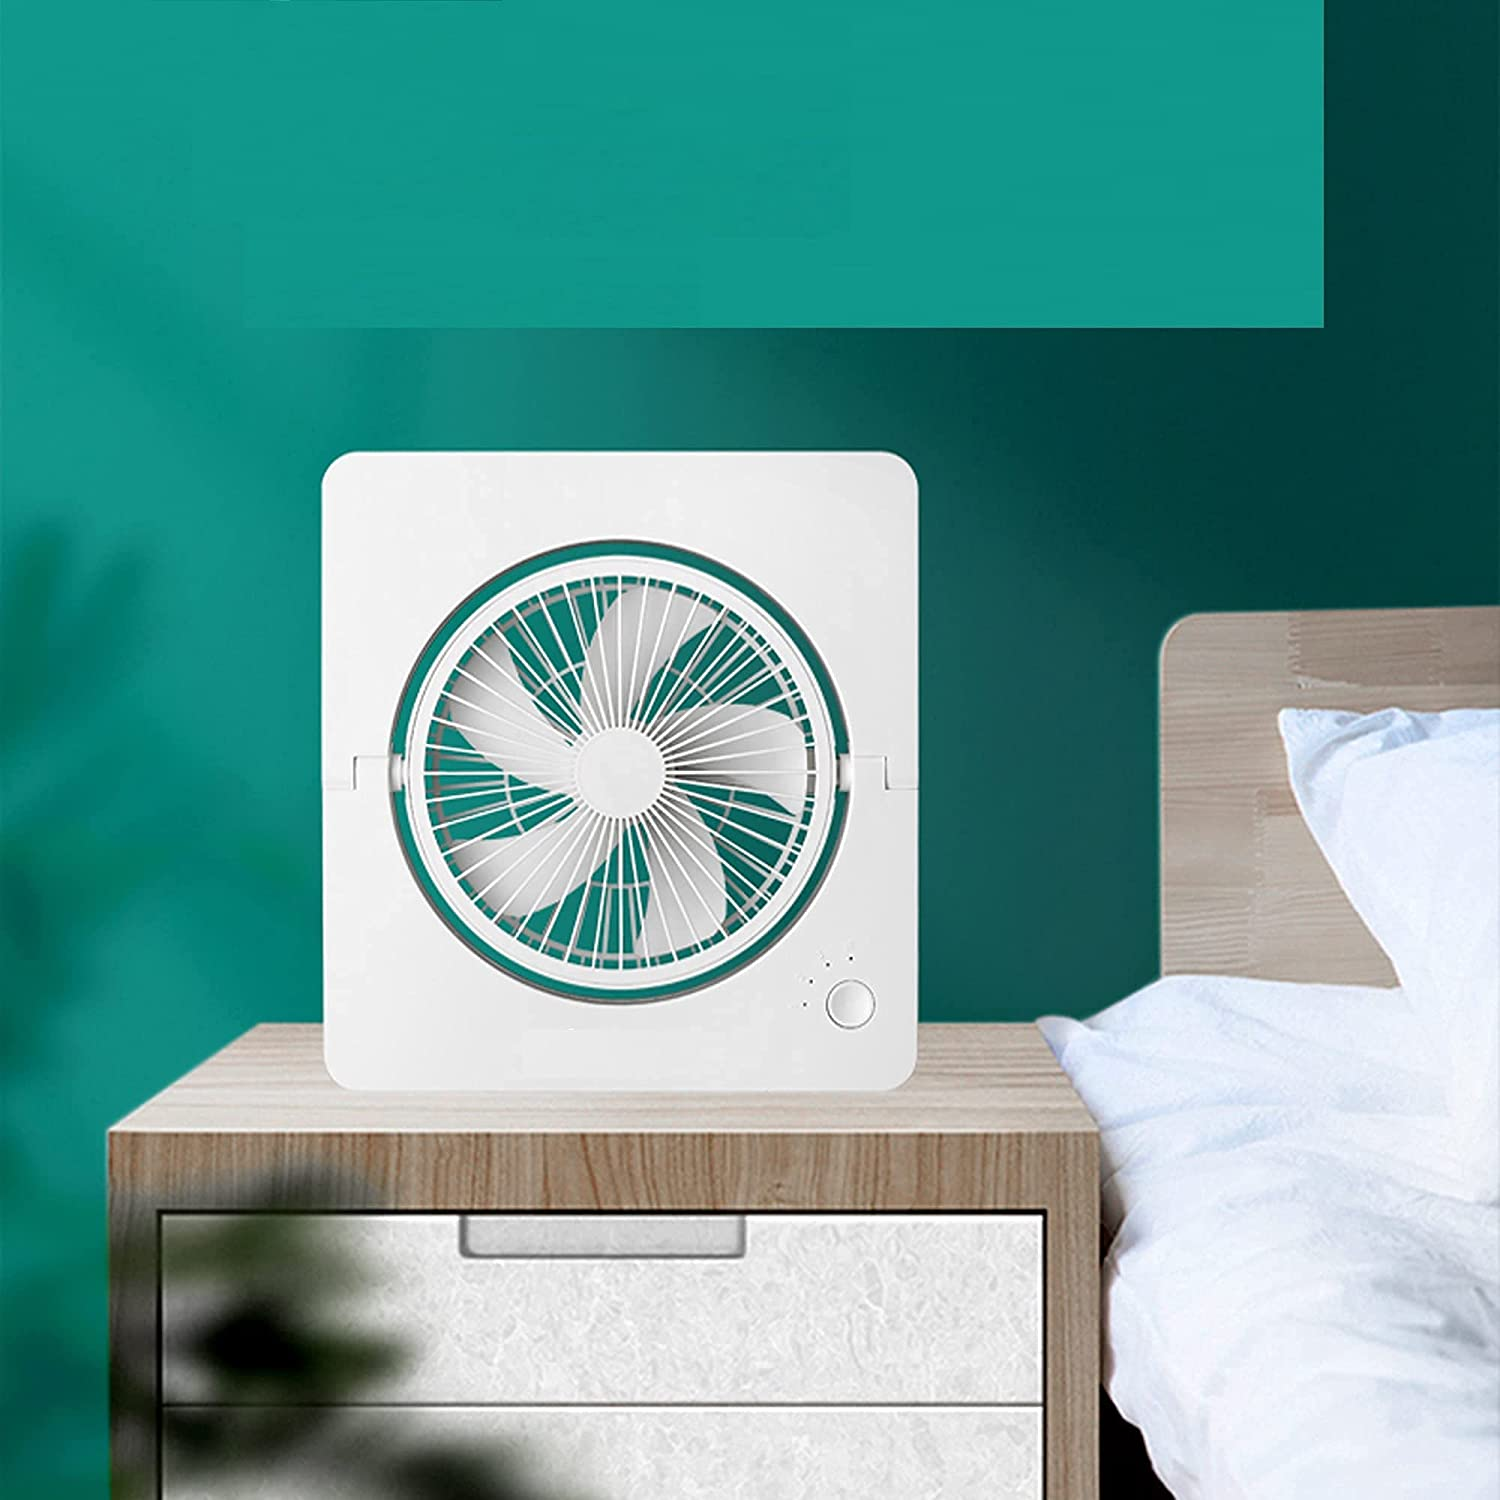 2 In 1 Air Circulator Fan Max 88% OFF Power Supply Brand new Small USB Qui charger